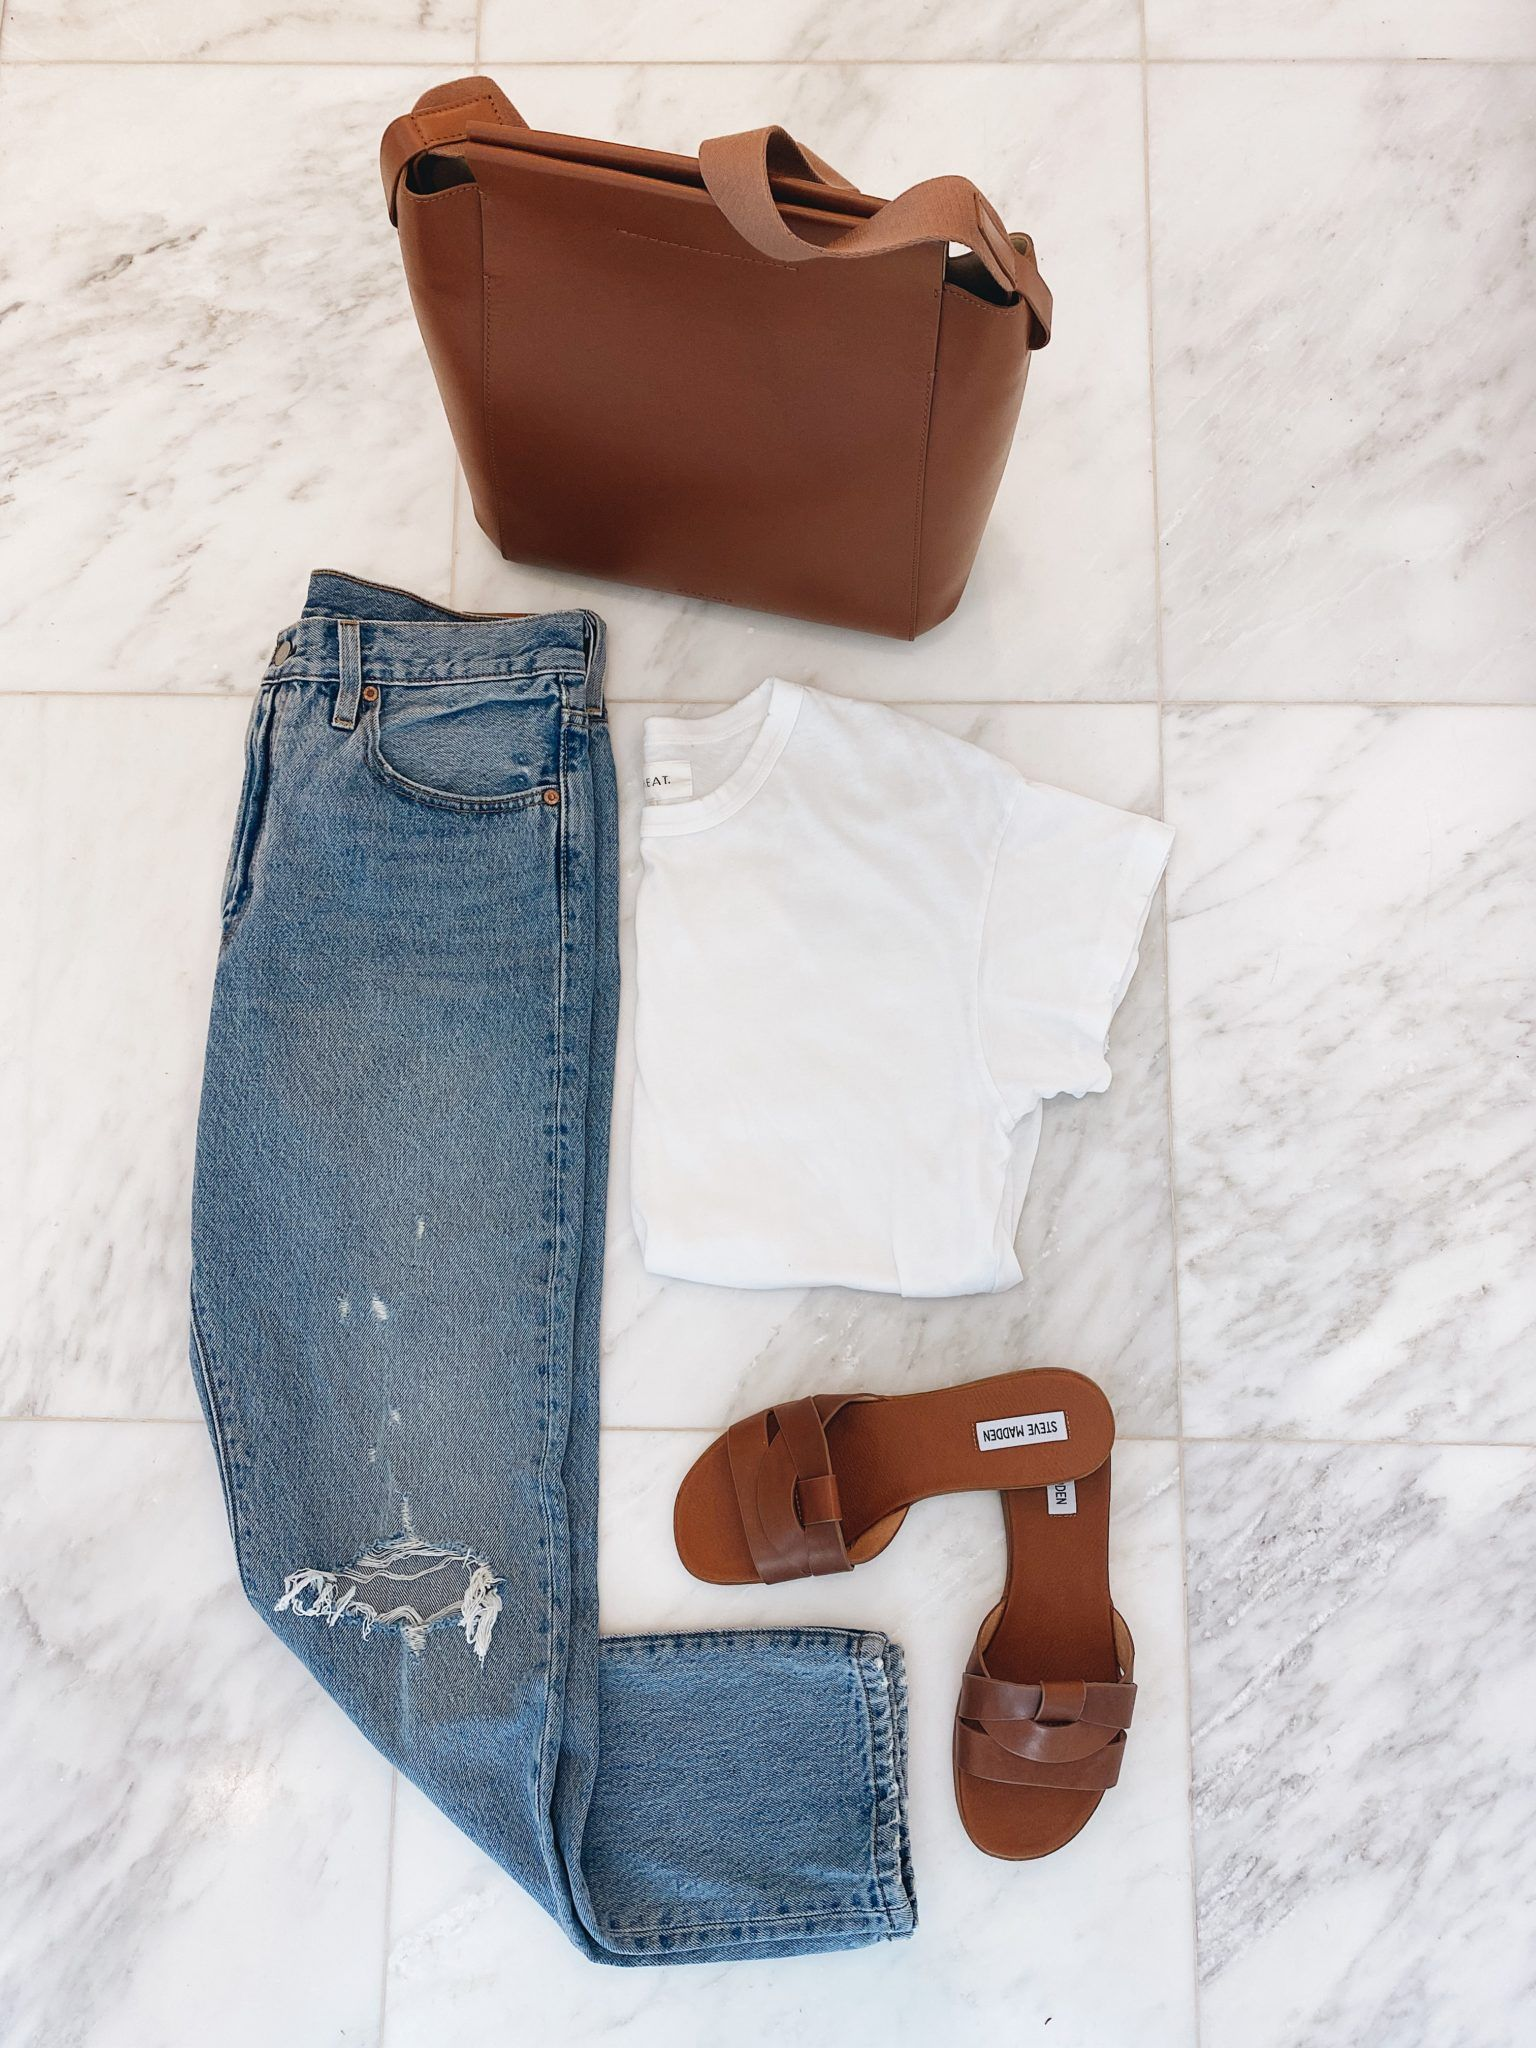 SPRING/SUMMER OUTFIT INSPO | The Style Scribe